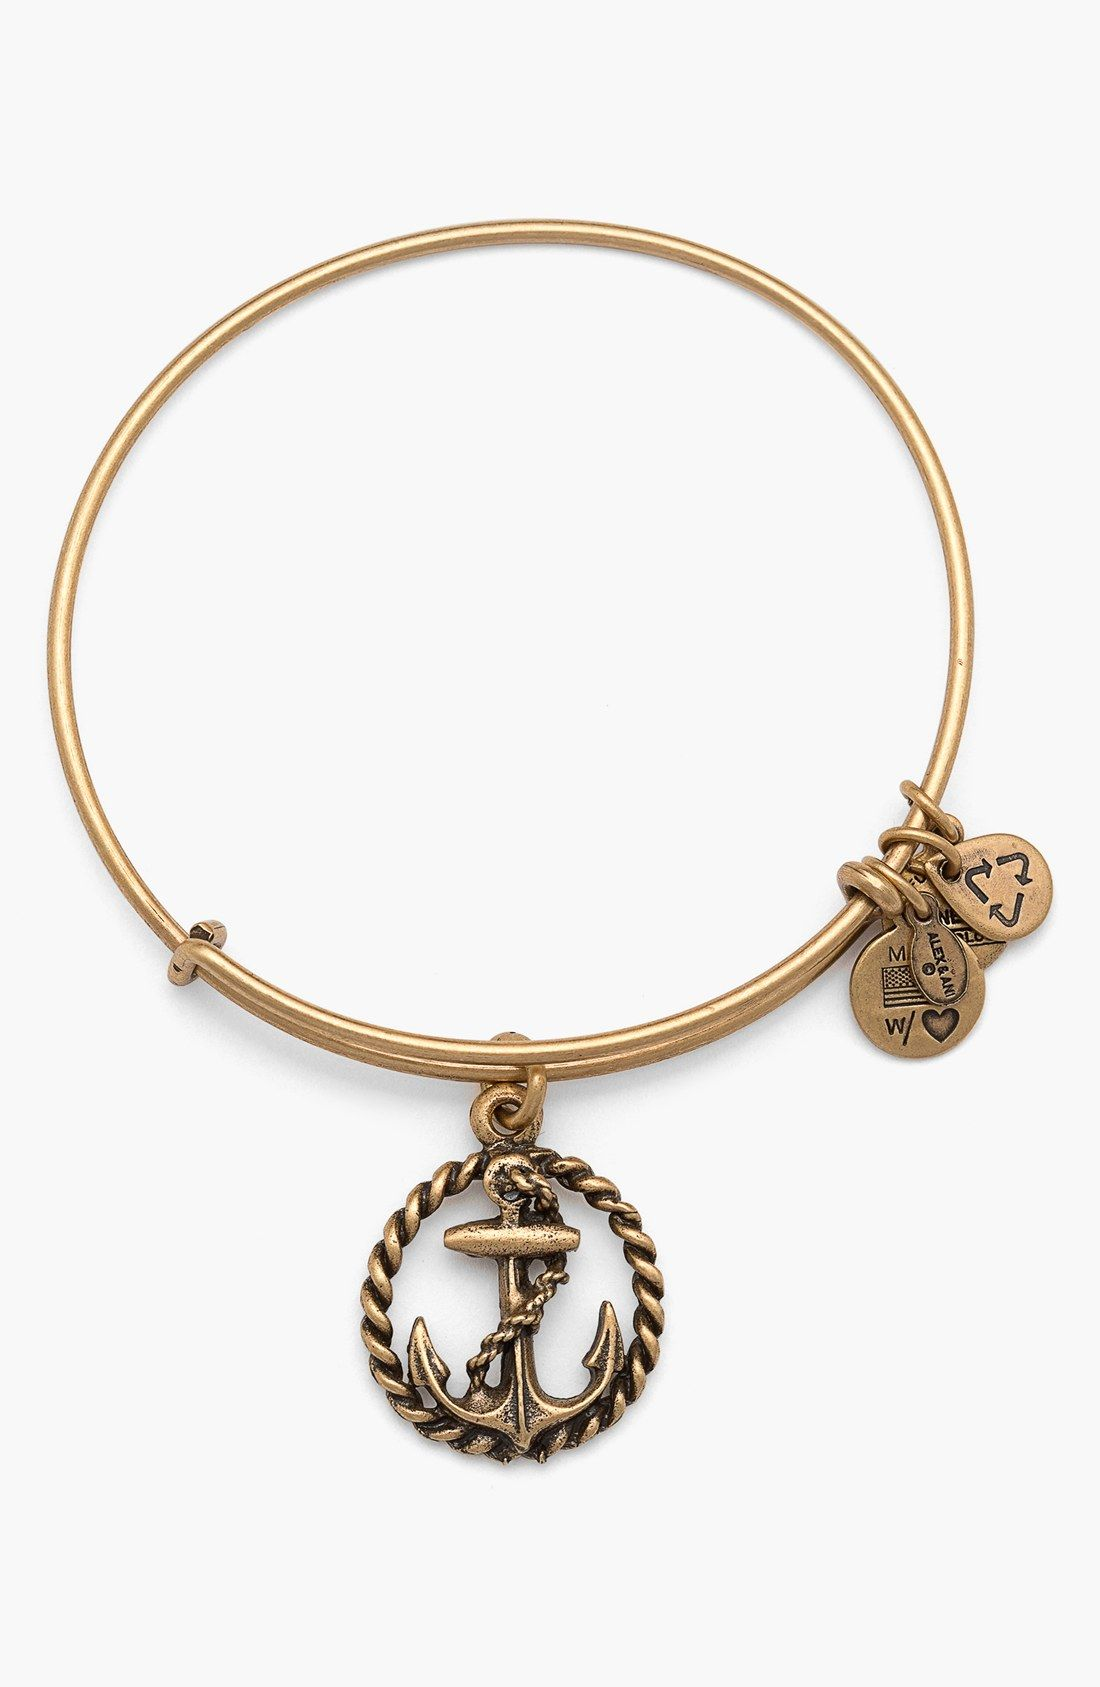 A Nautical Charm Adorns This Dainty Adjule Bracelet From Alex And Ani Wear For Courage Safety Peace Of Mind